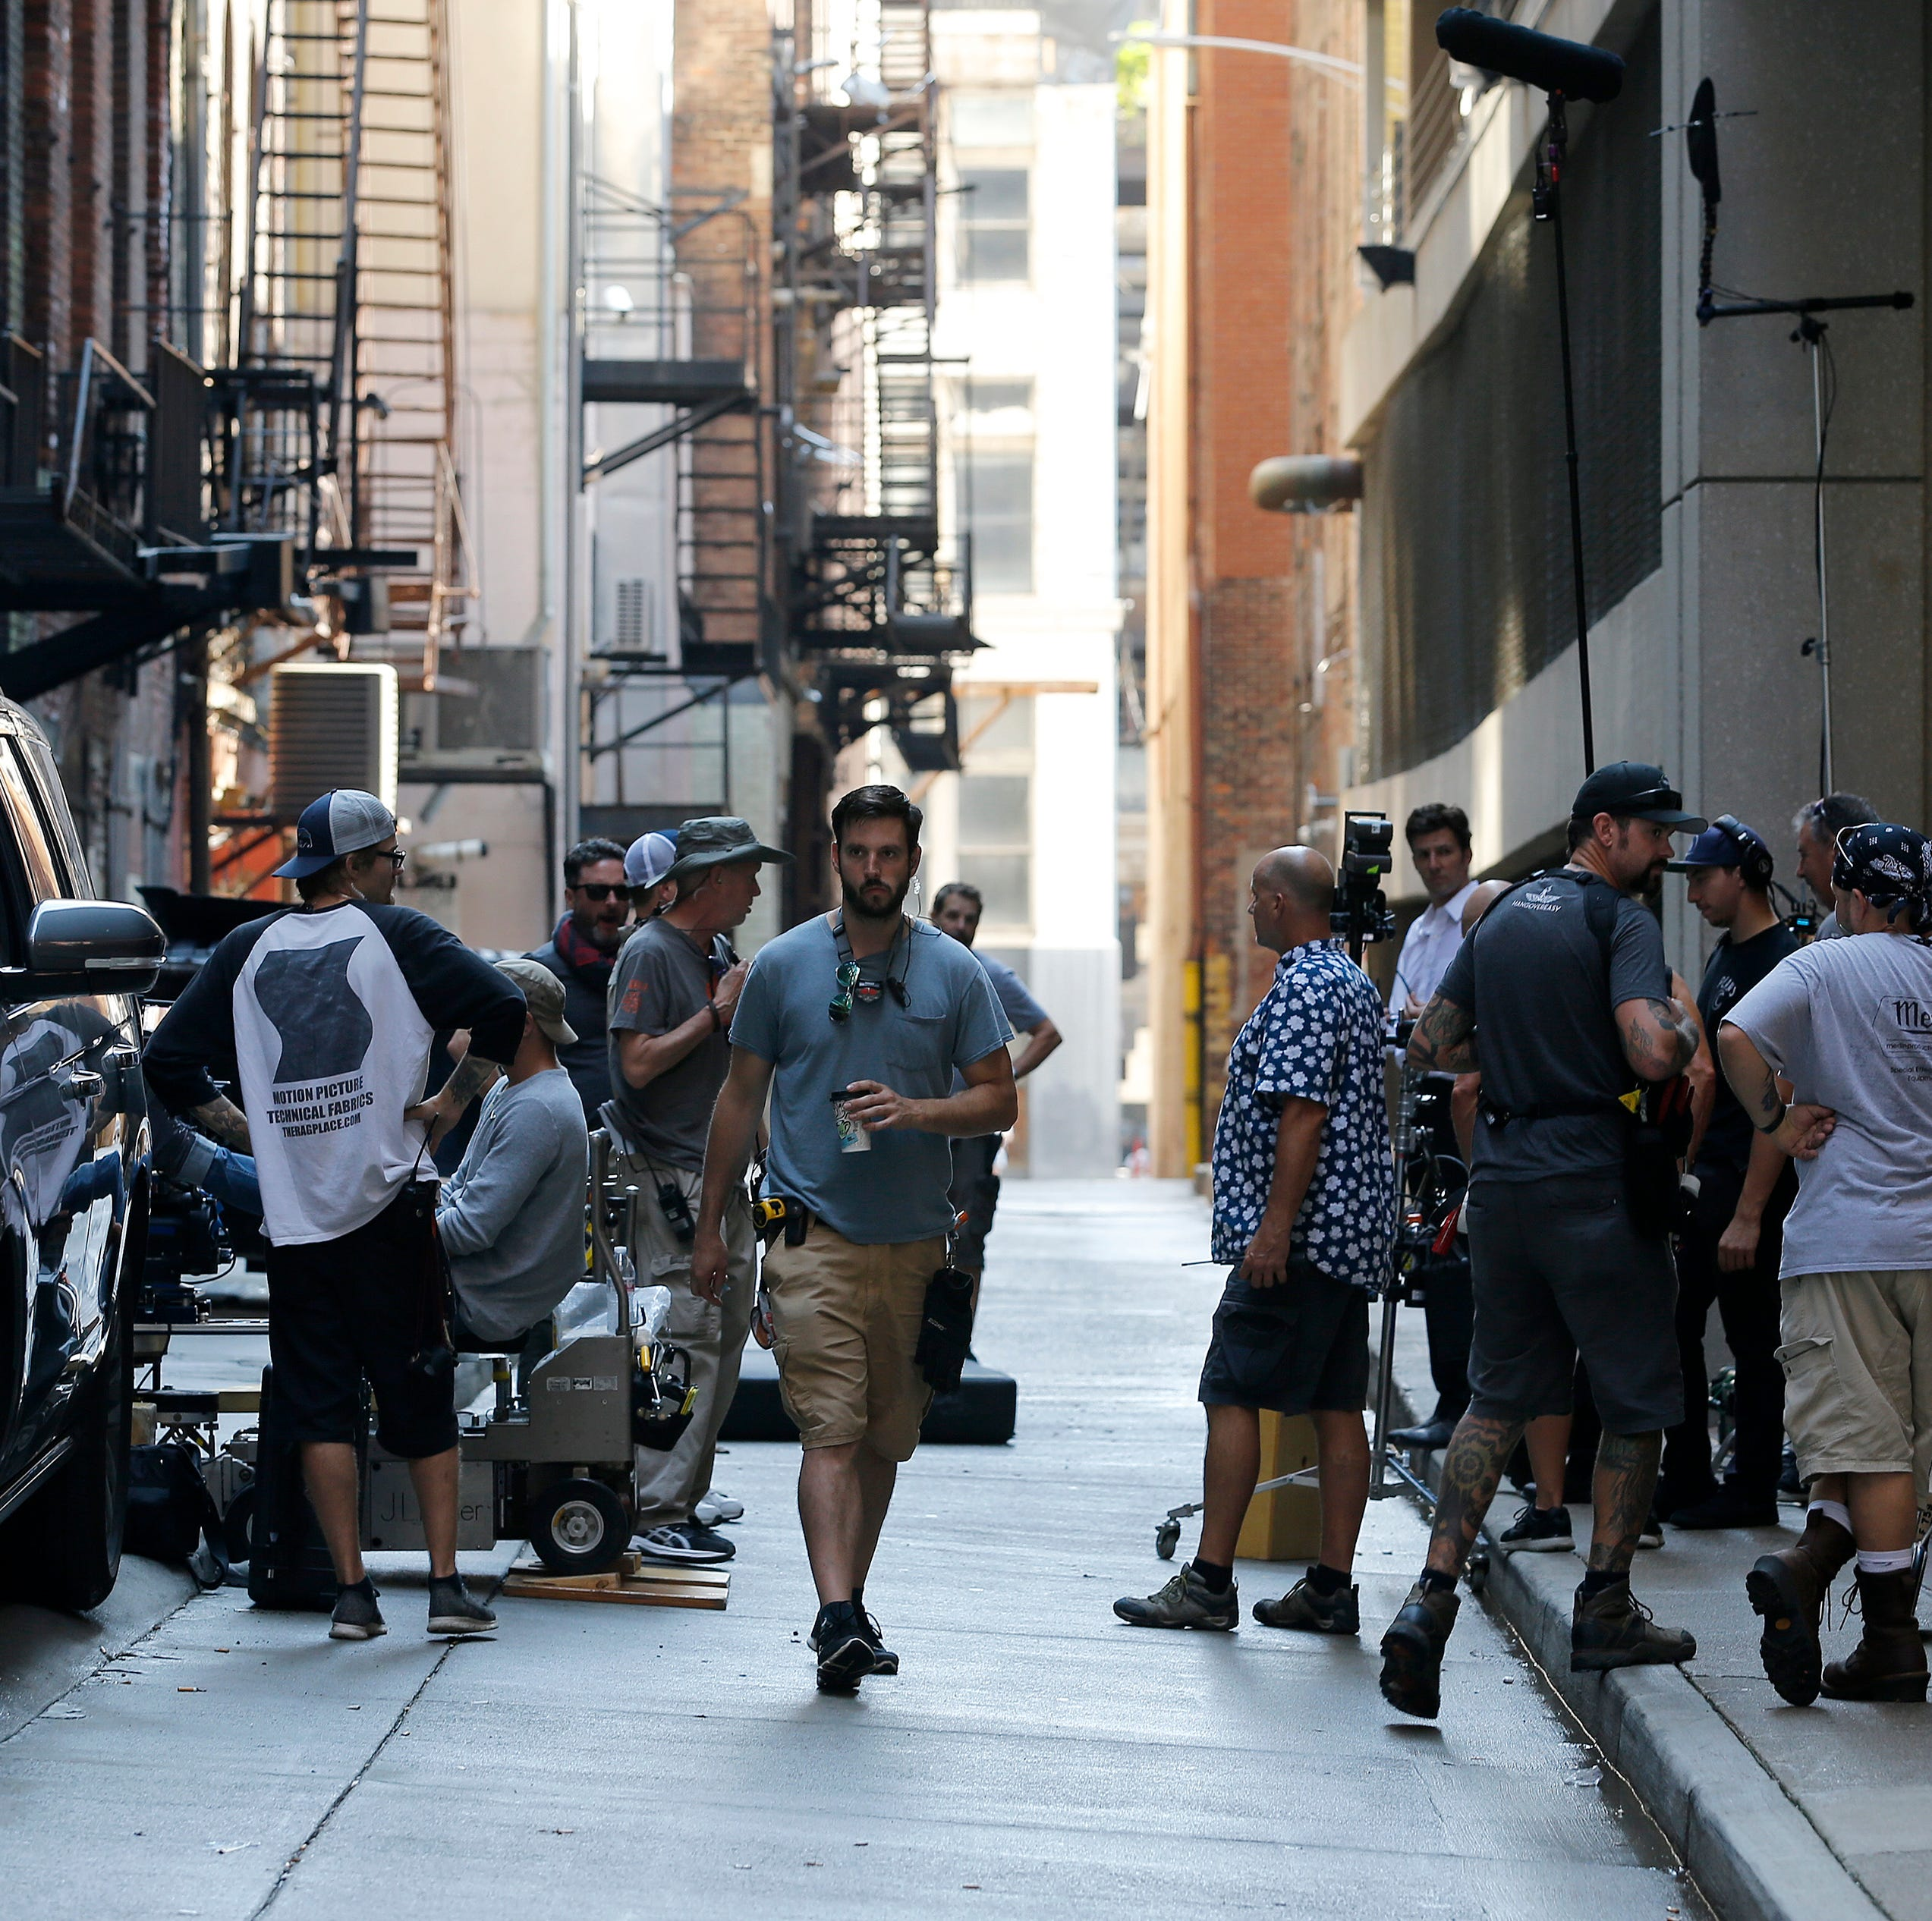 In wake of active shooter situation, faux gunfire for Downtown movie shoot continues